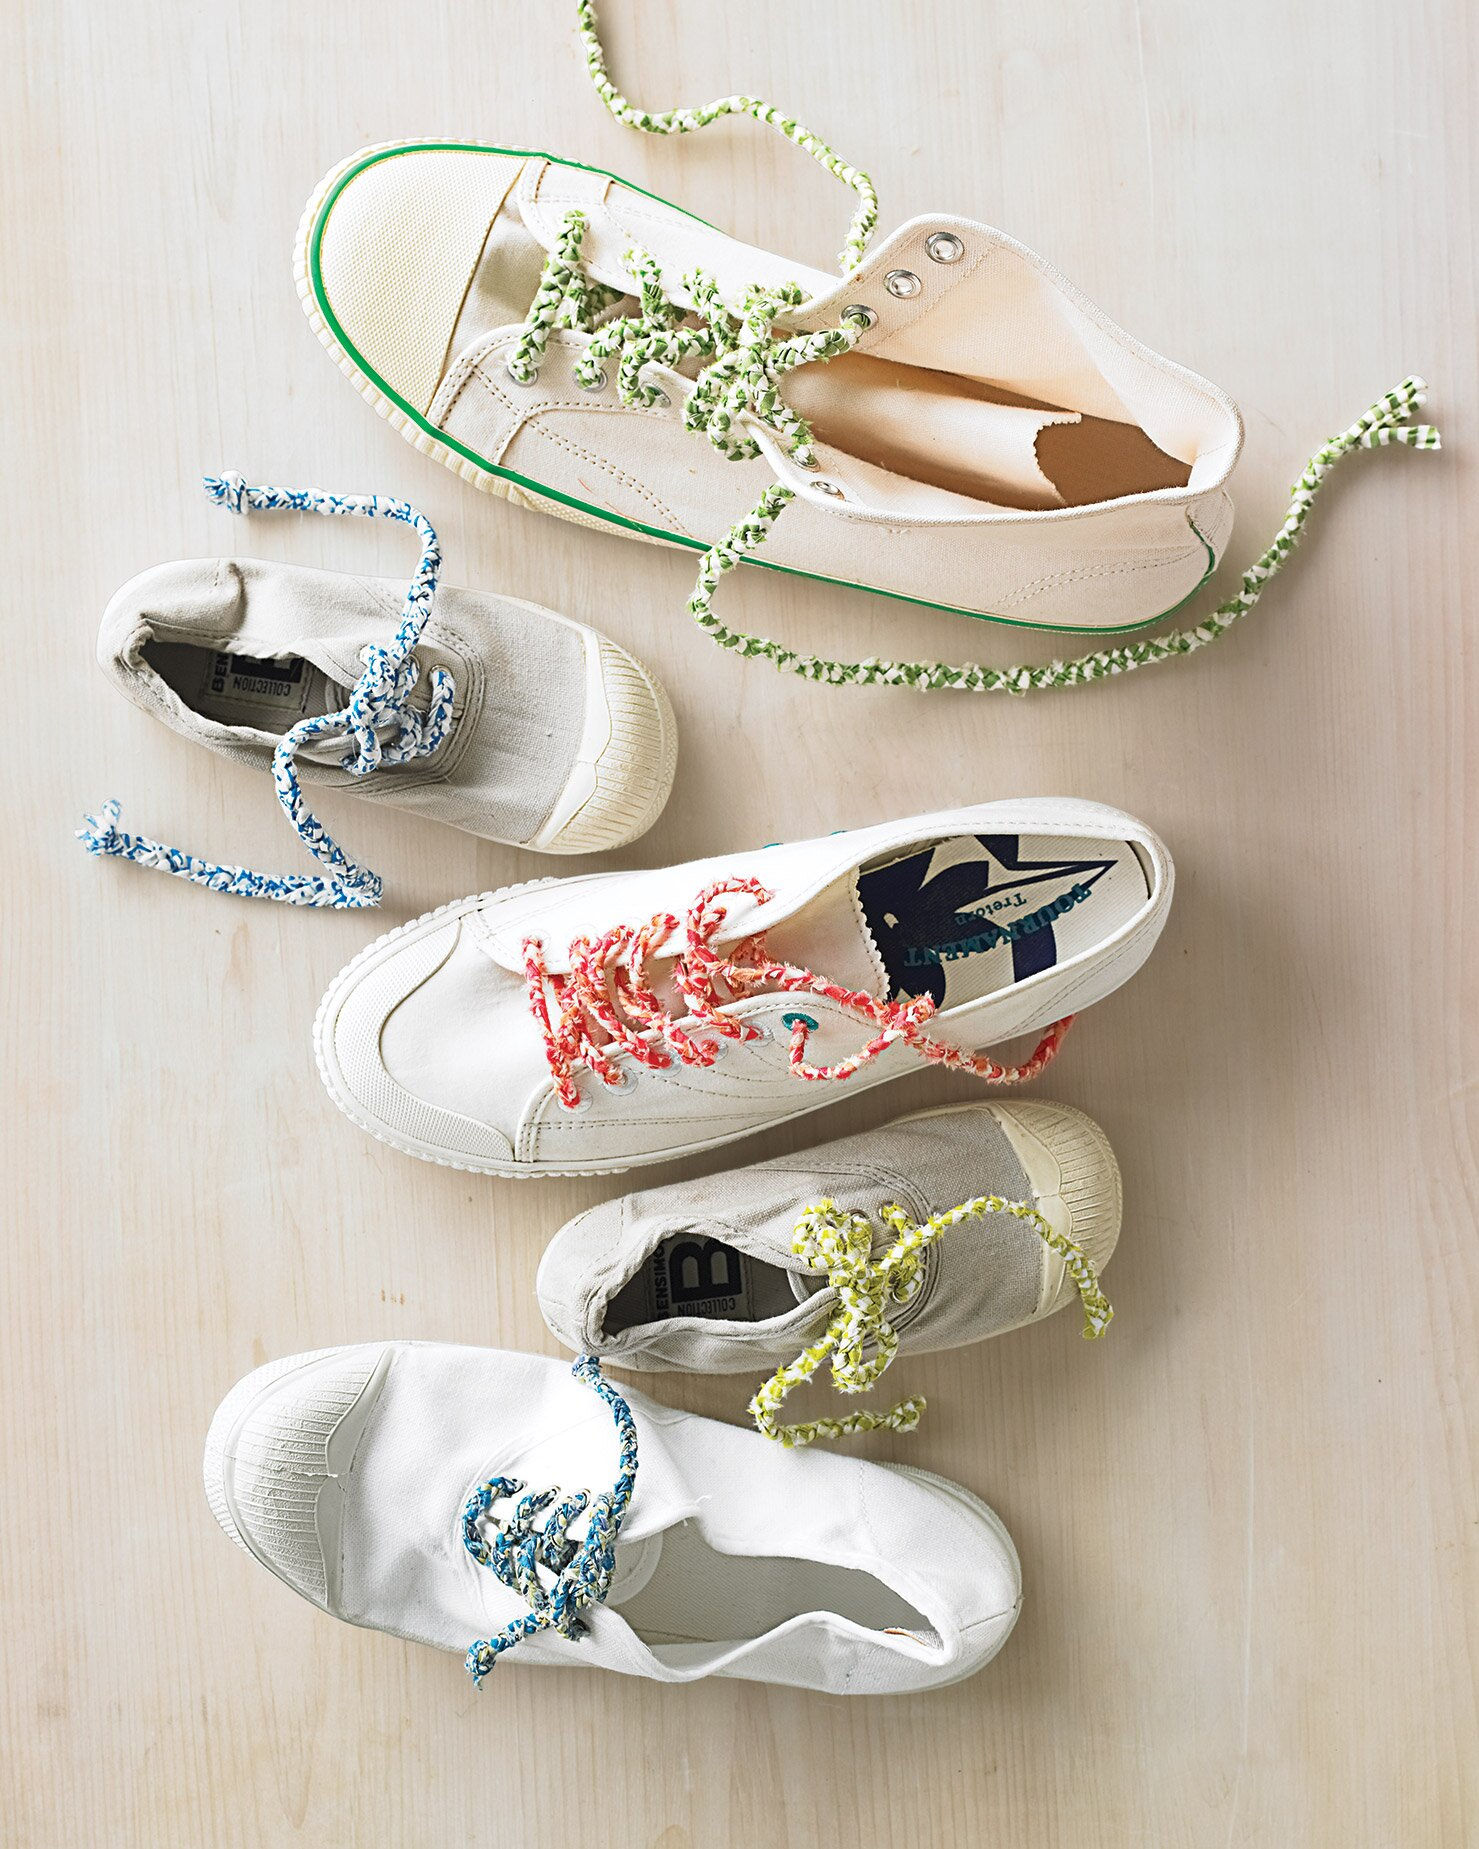 25 Ways To Kick Up Your Style With Diy Shoes Martha Stewart